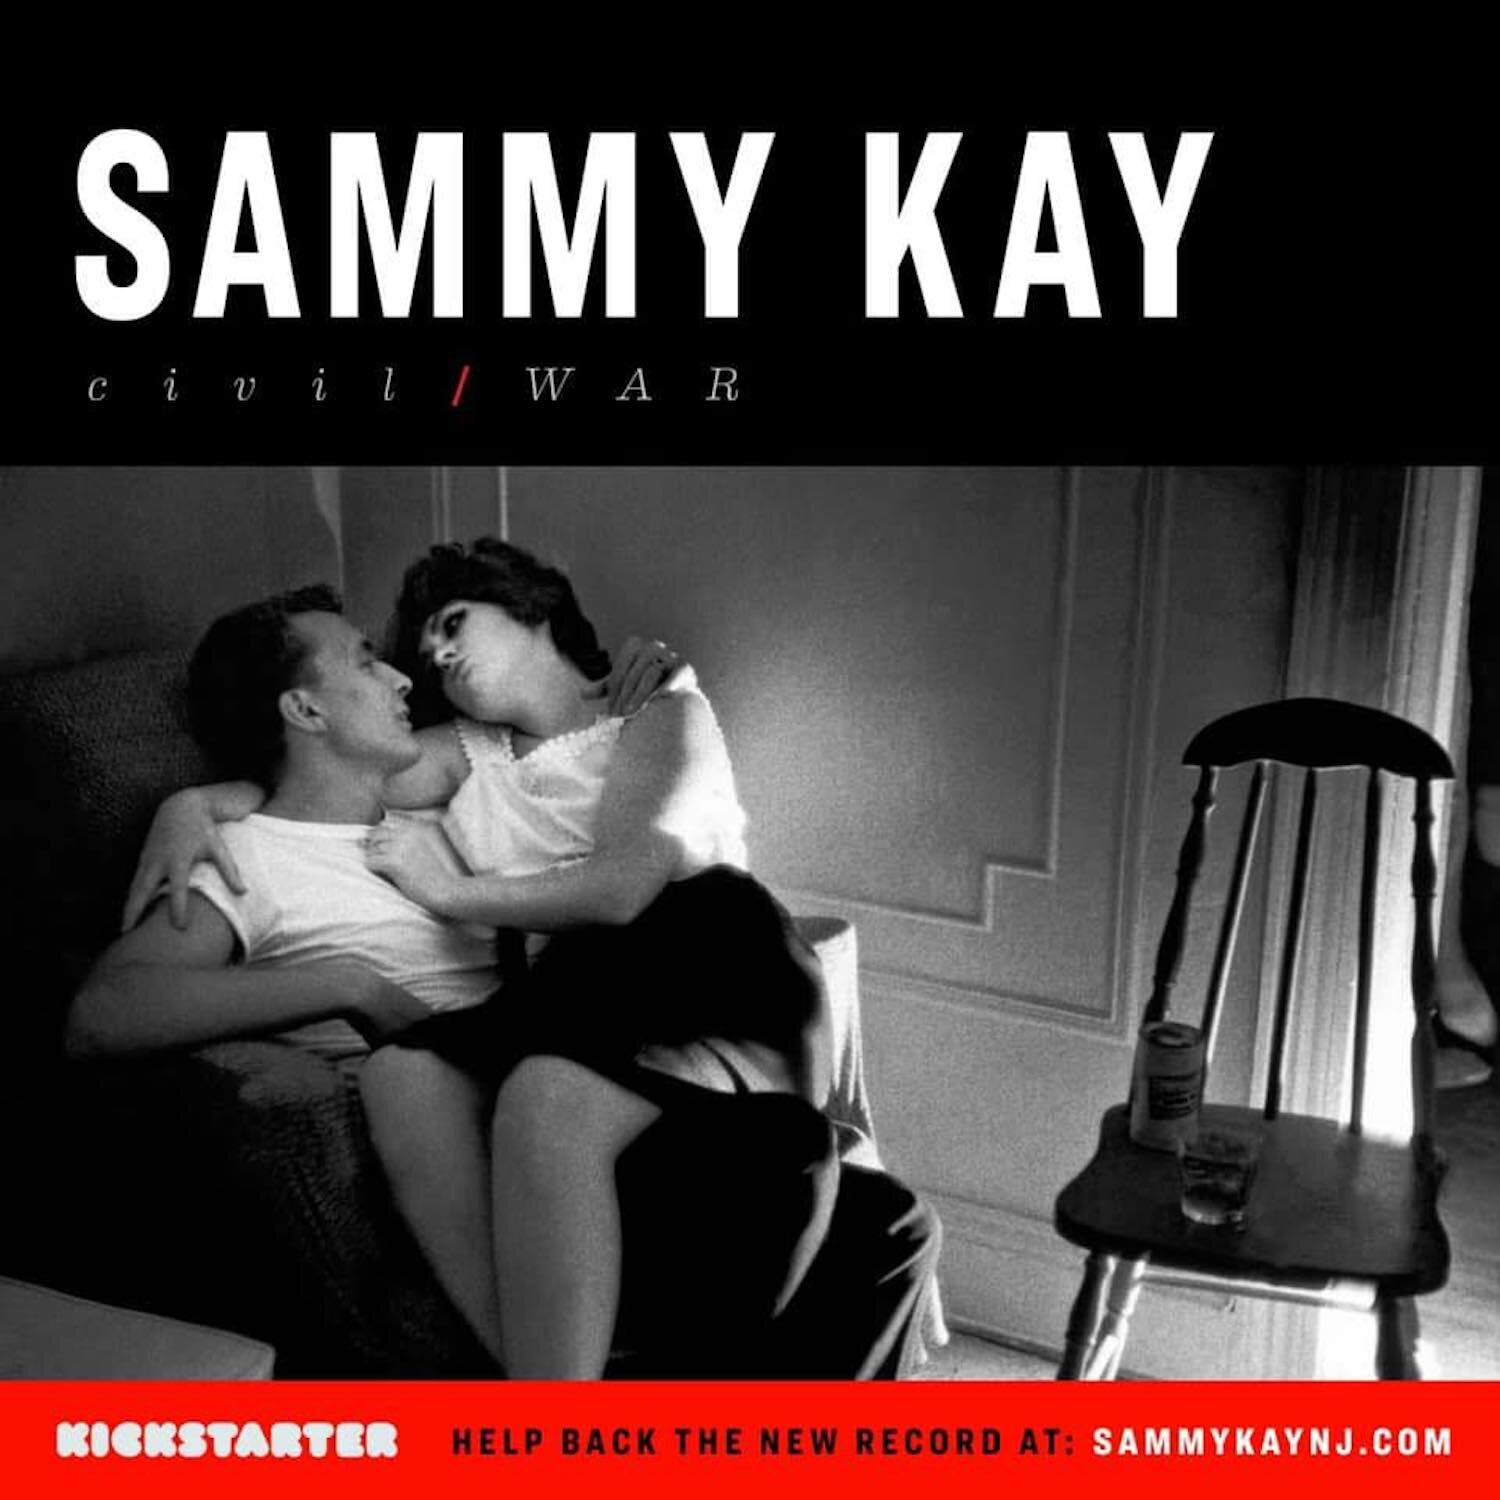 Sammy Kay Civil War album cover.jpg